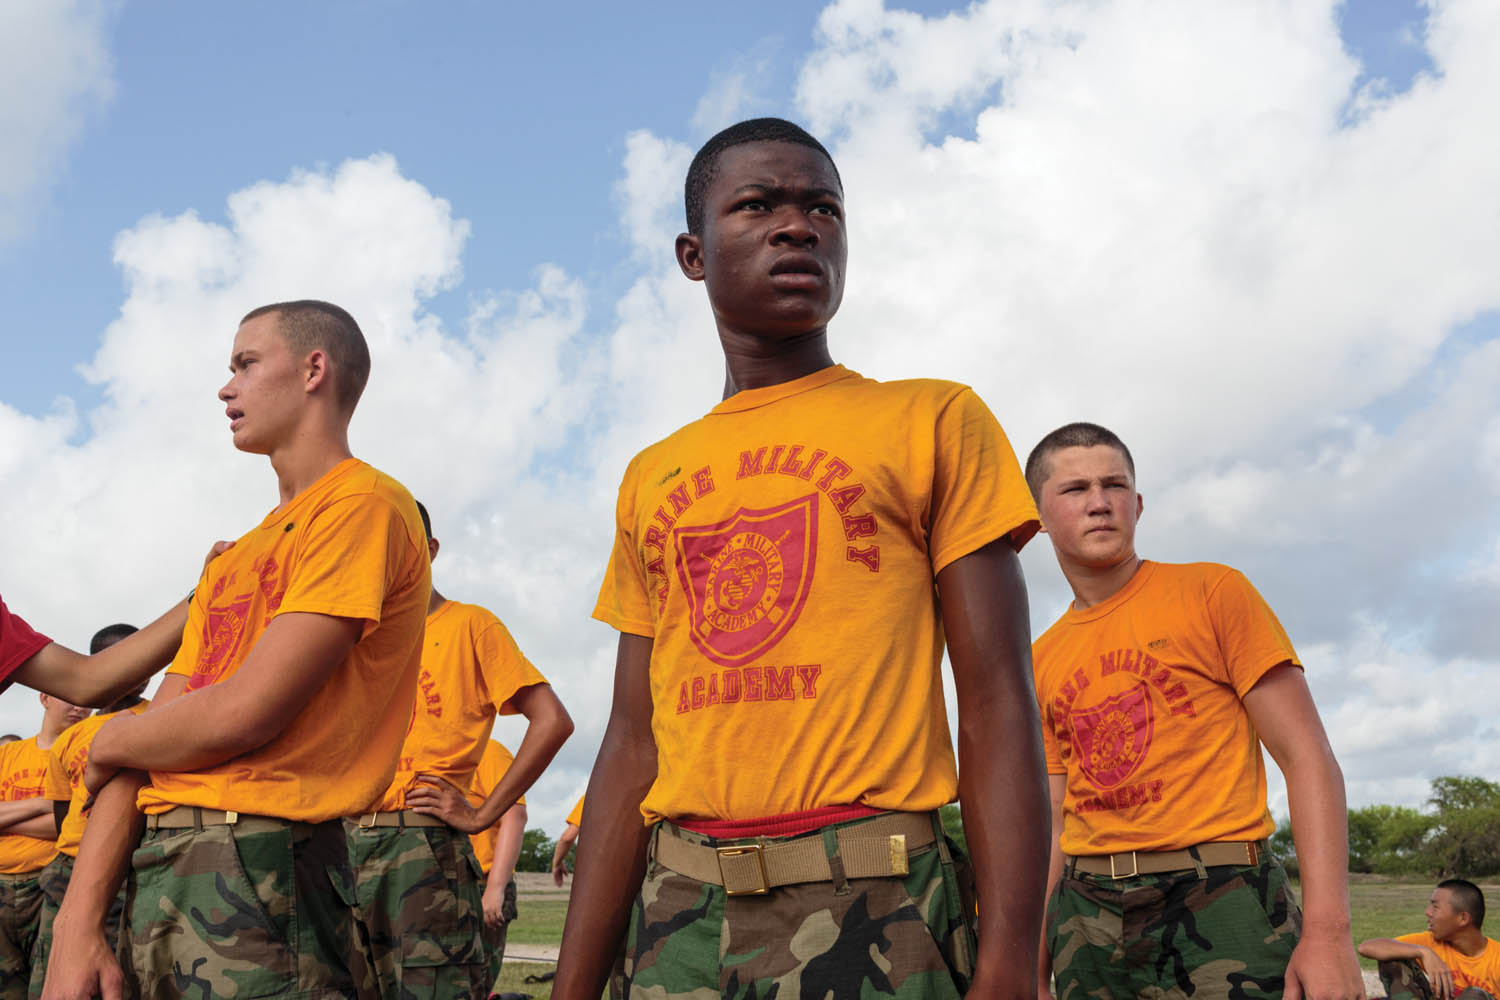 Students prepare for physical drills at Marine Military Academy, an all-boys institute in Harlingen, TX. Attendees comprise boys, ages twelve to eighteen, from around the world, with almost 400 cadets in attendance. Photographed by Sarah Blesener